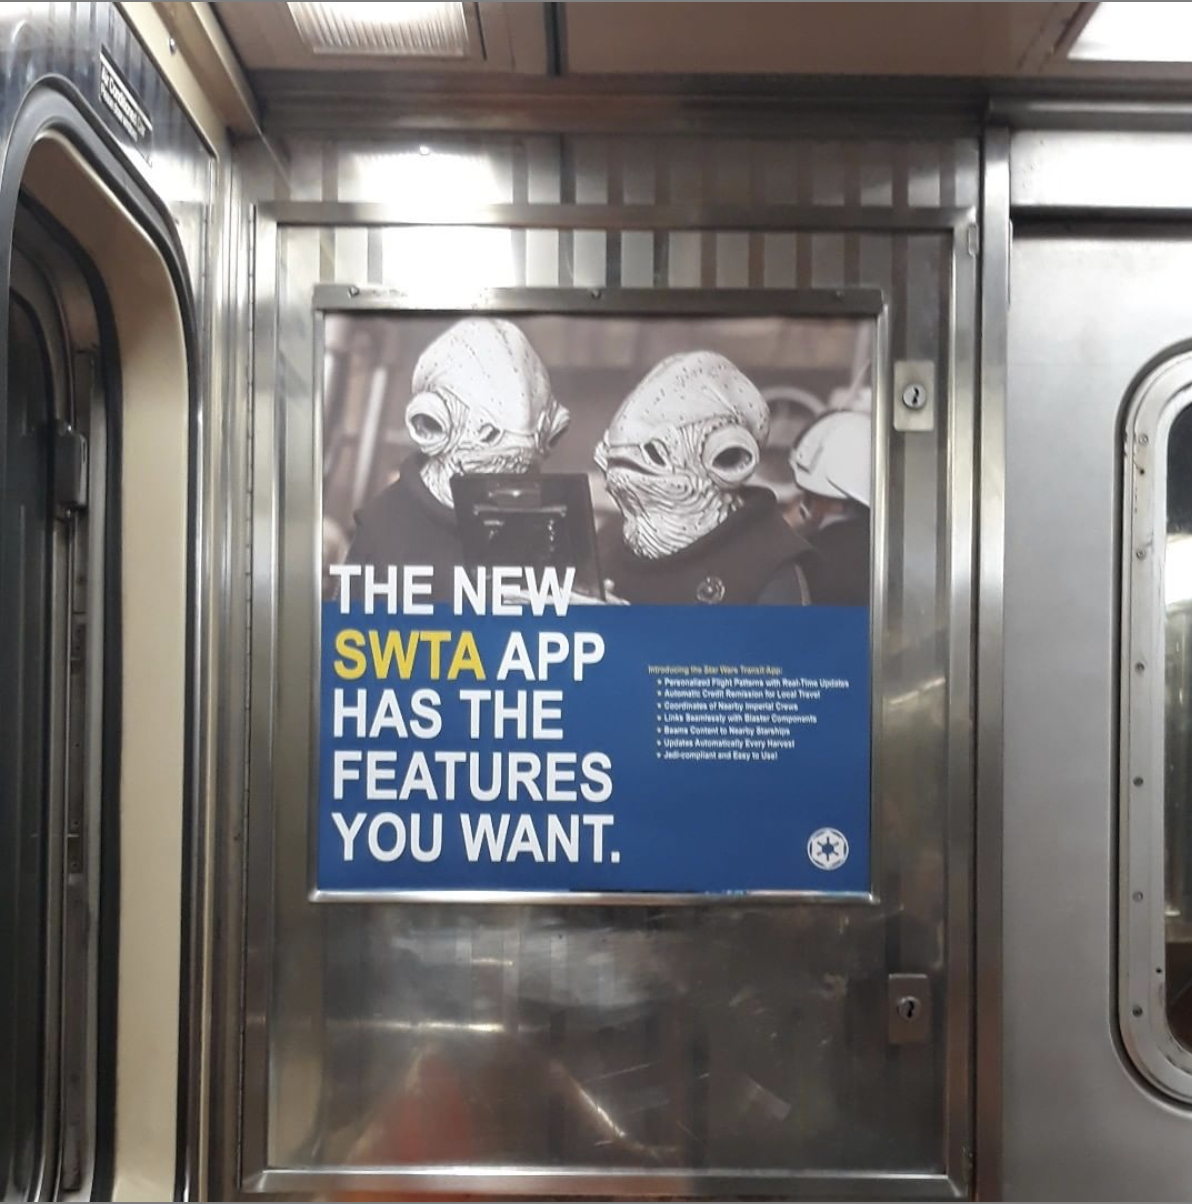 poster inside of an MTA subway cart of creatures from the Star Wars films